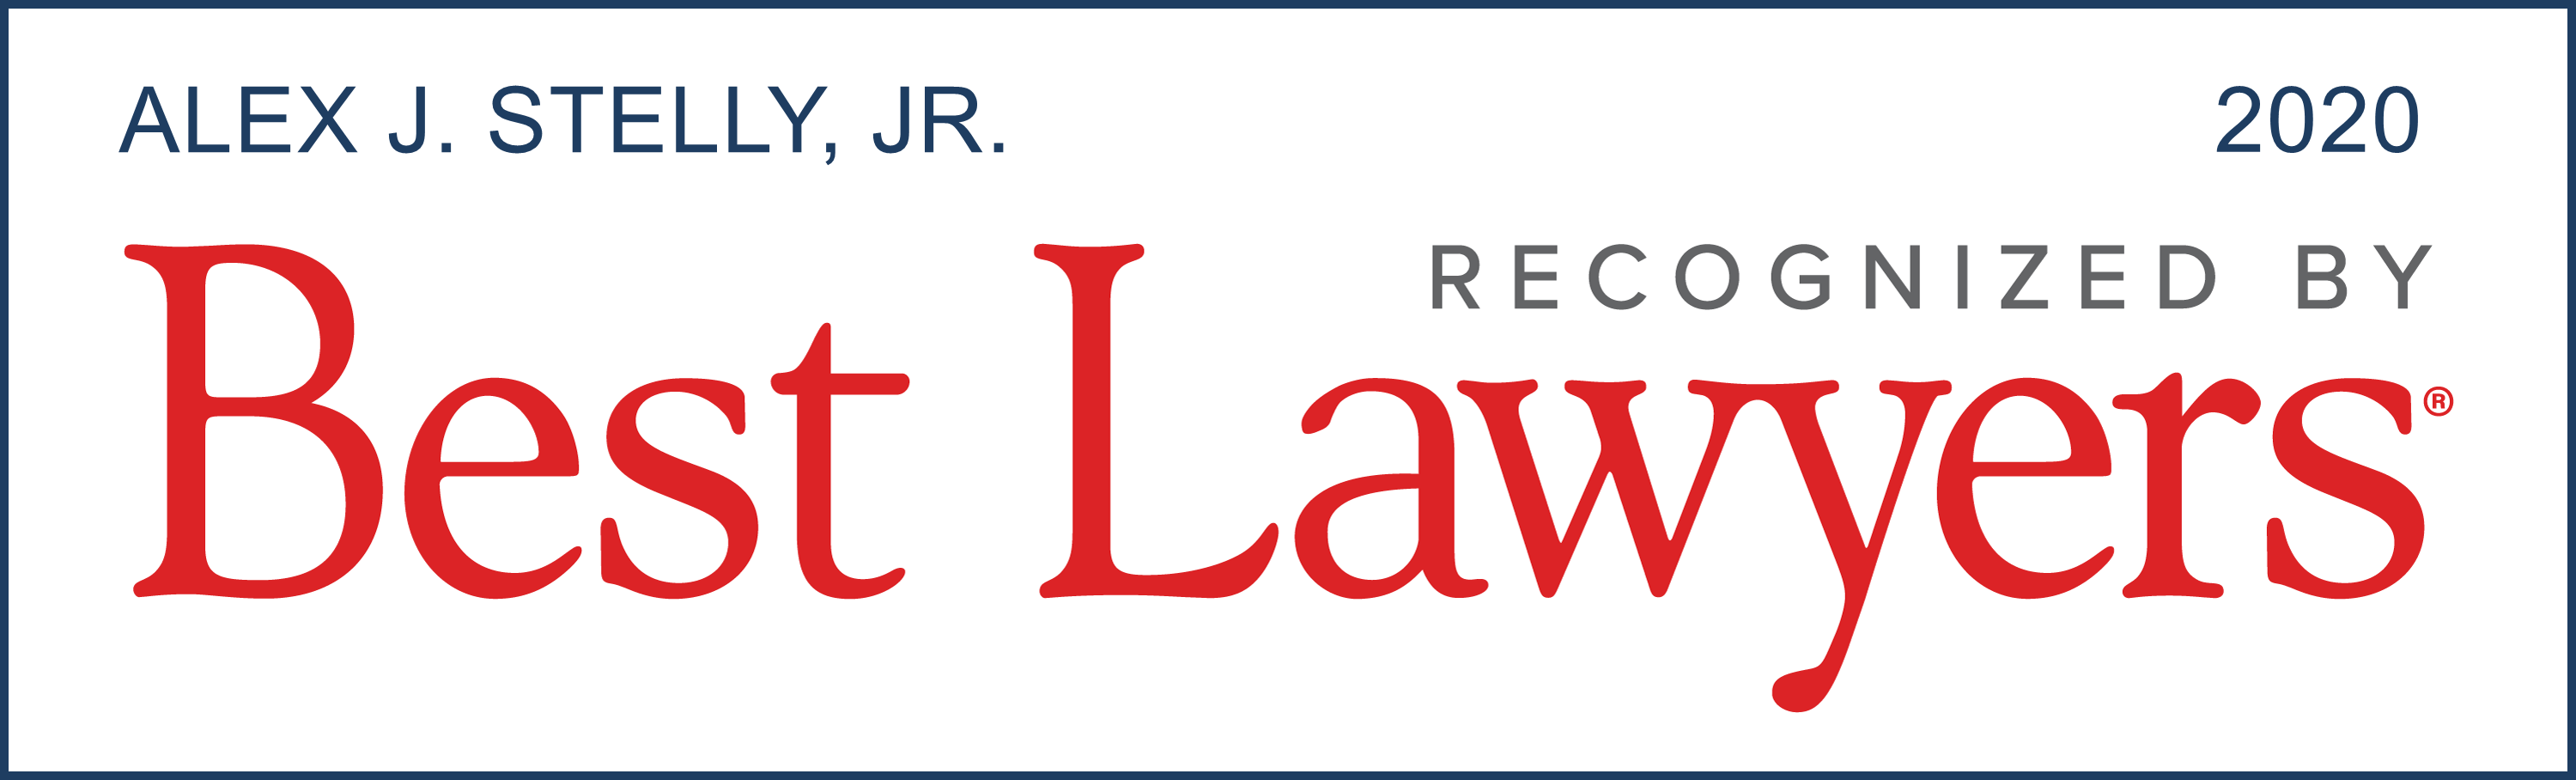 U.S.News & World Report - Best Lawyers 2020